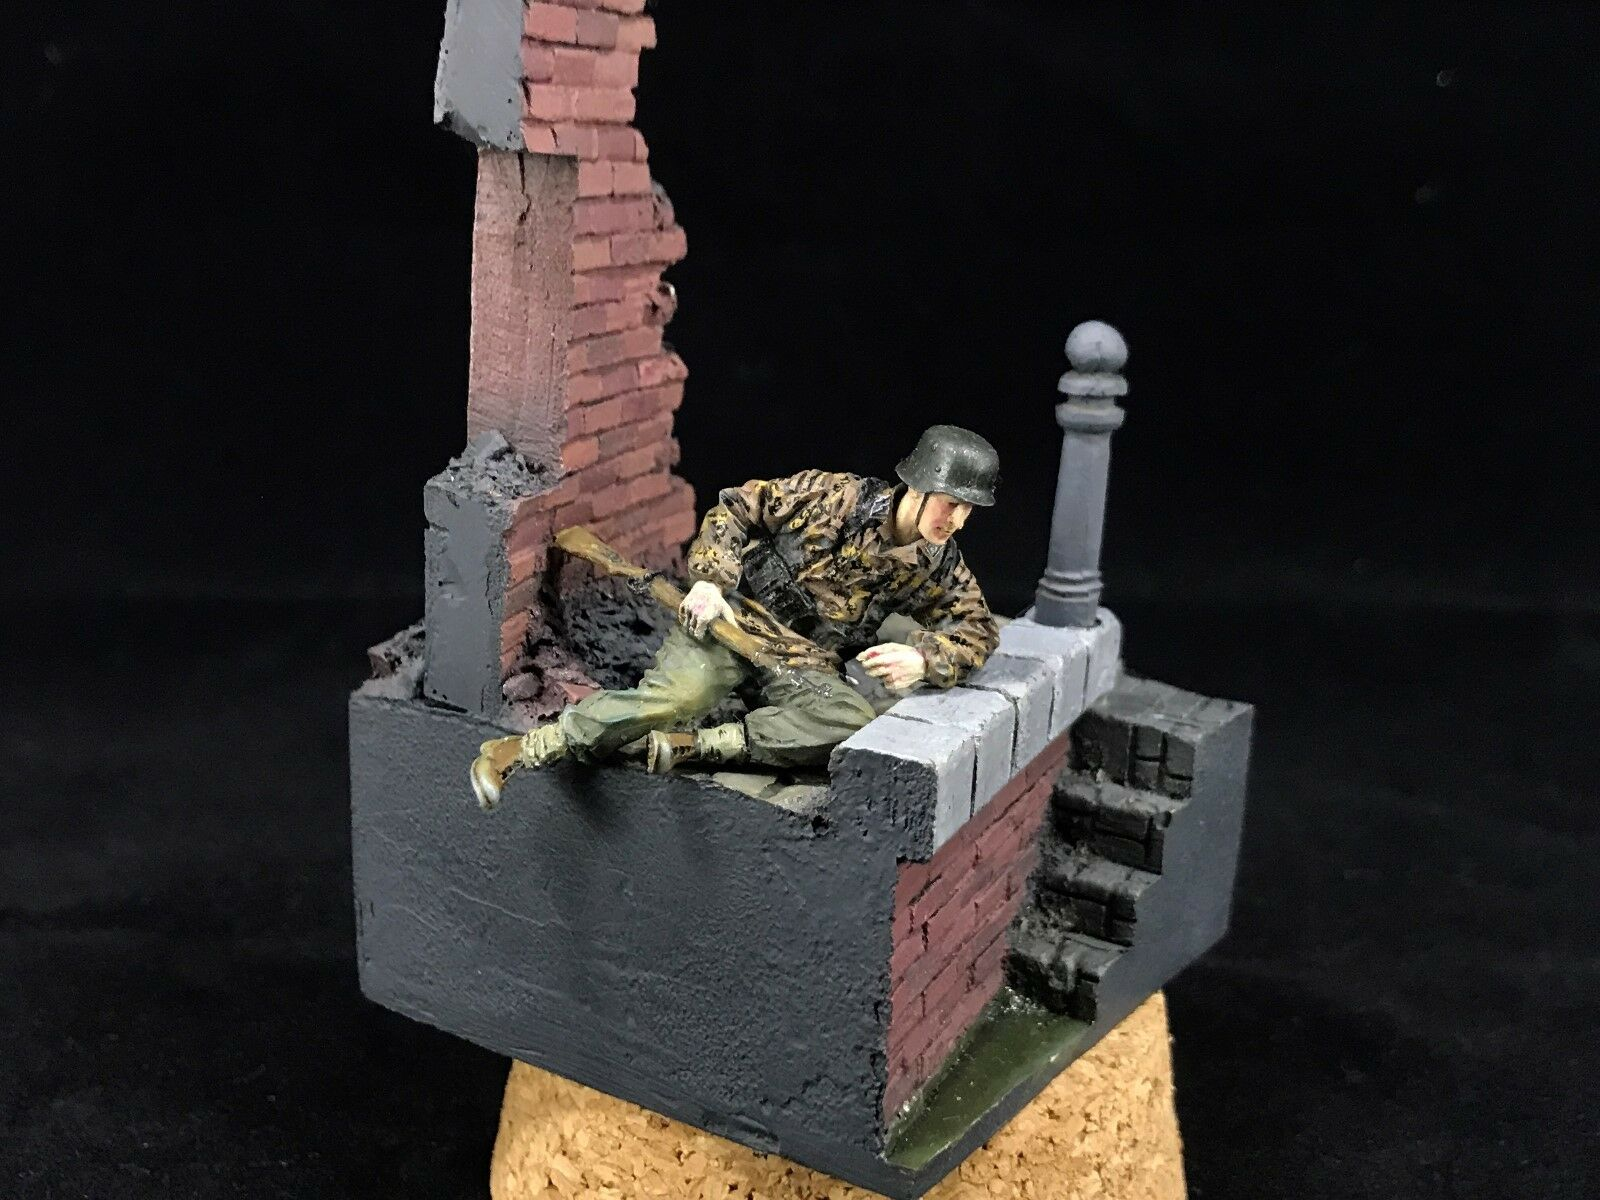 1 35 Built and Painted Resin WWII German SS Soldier Figure Model